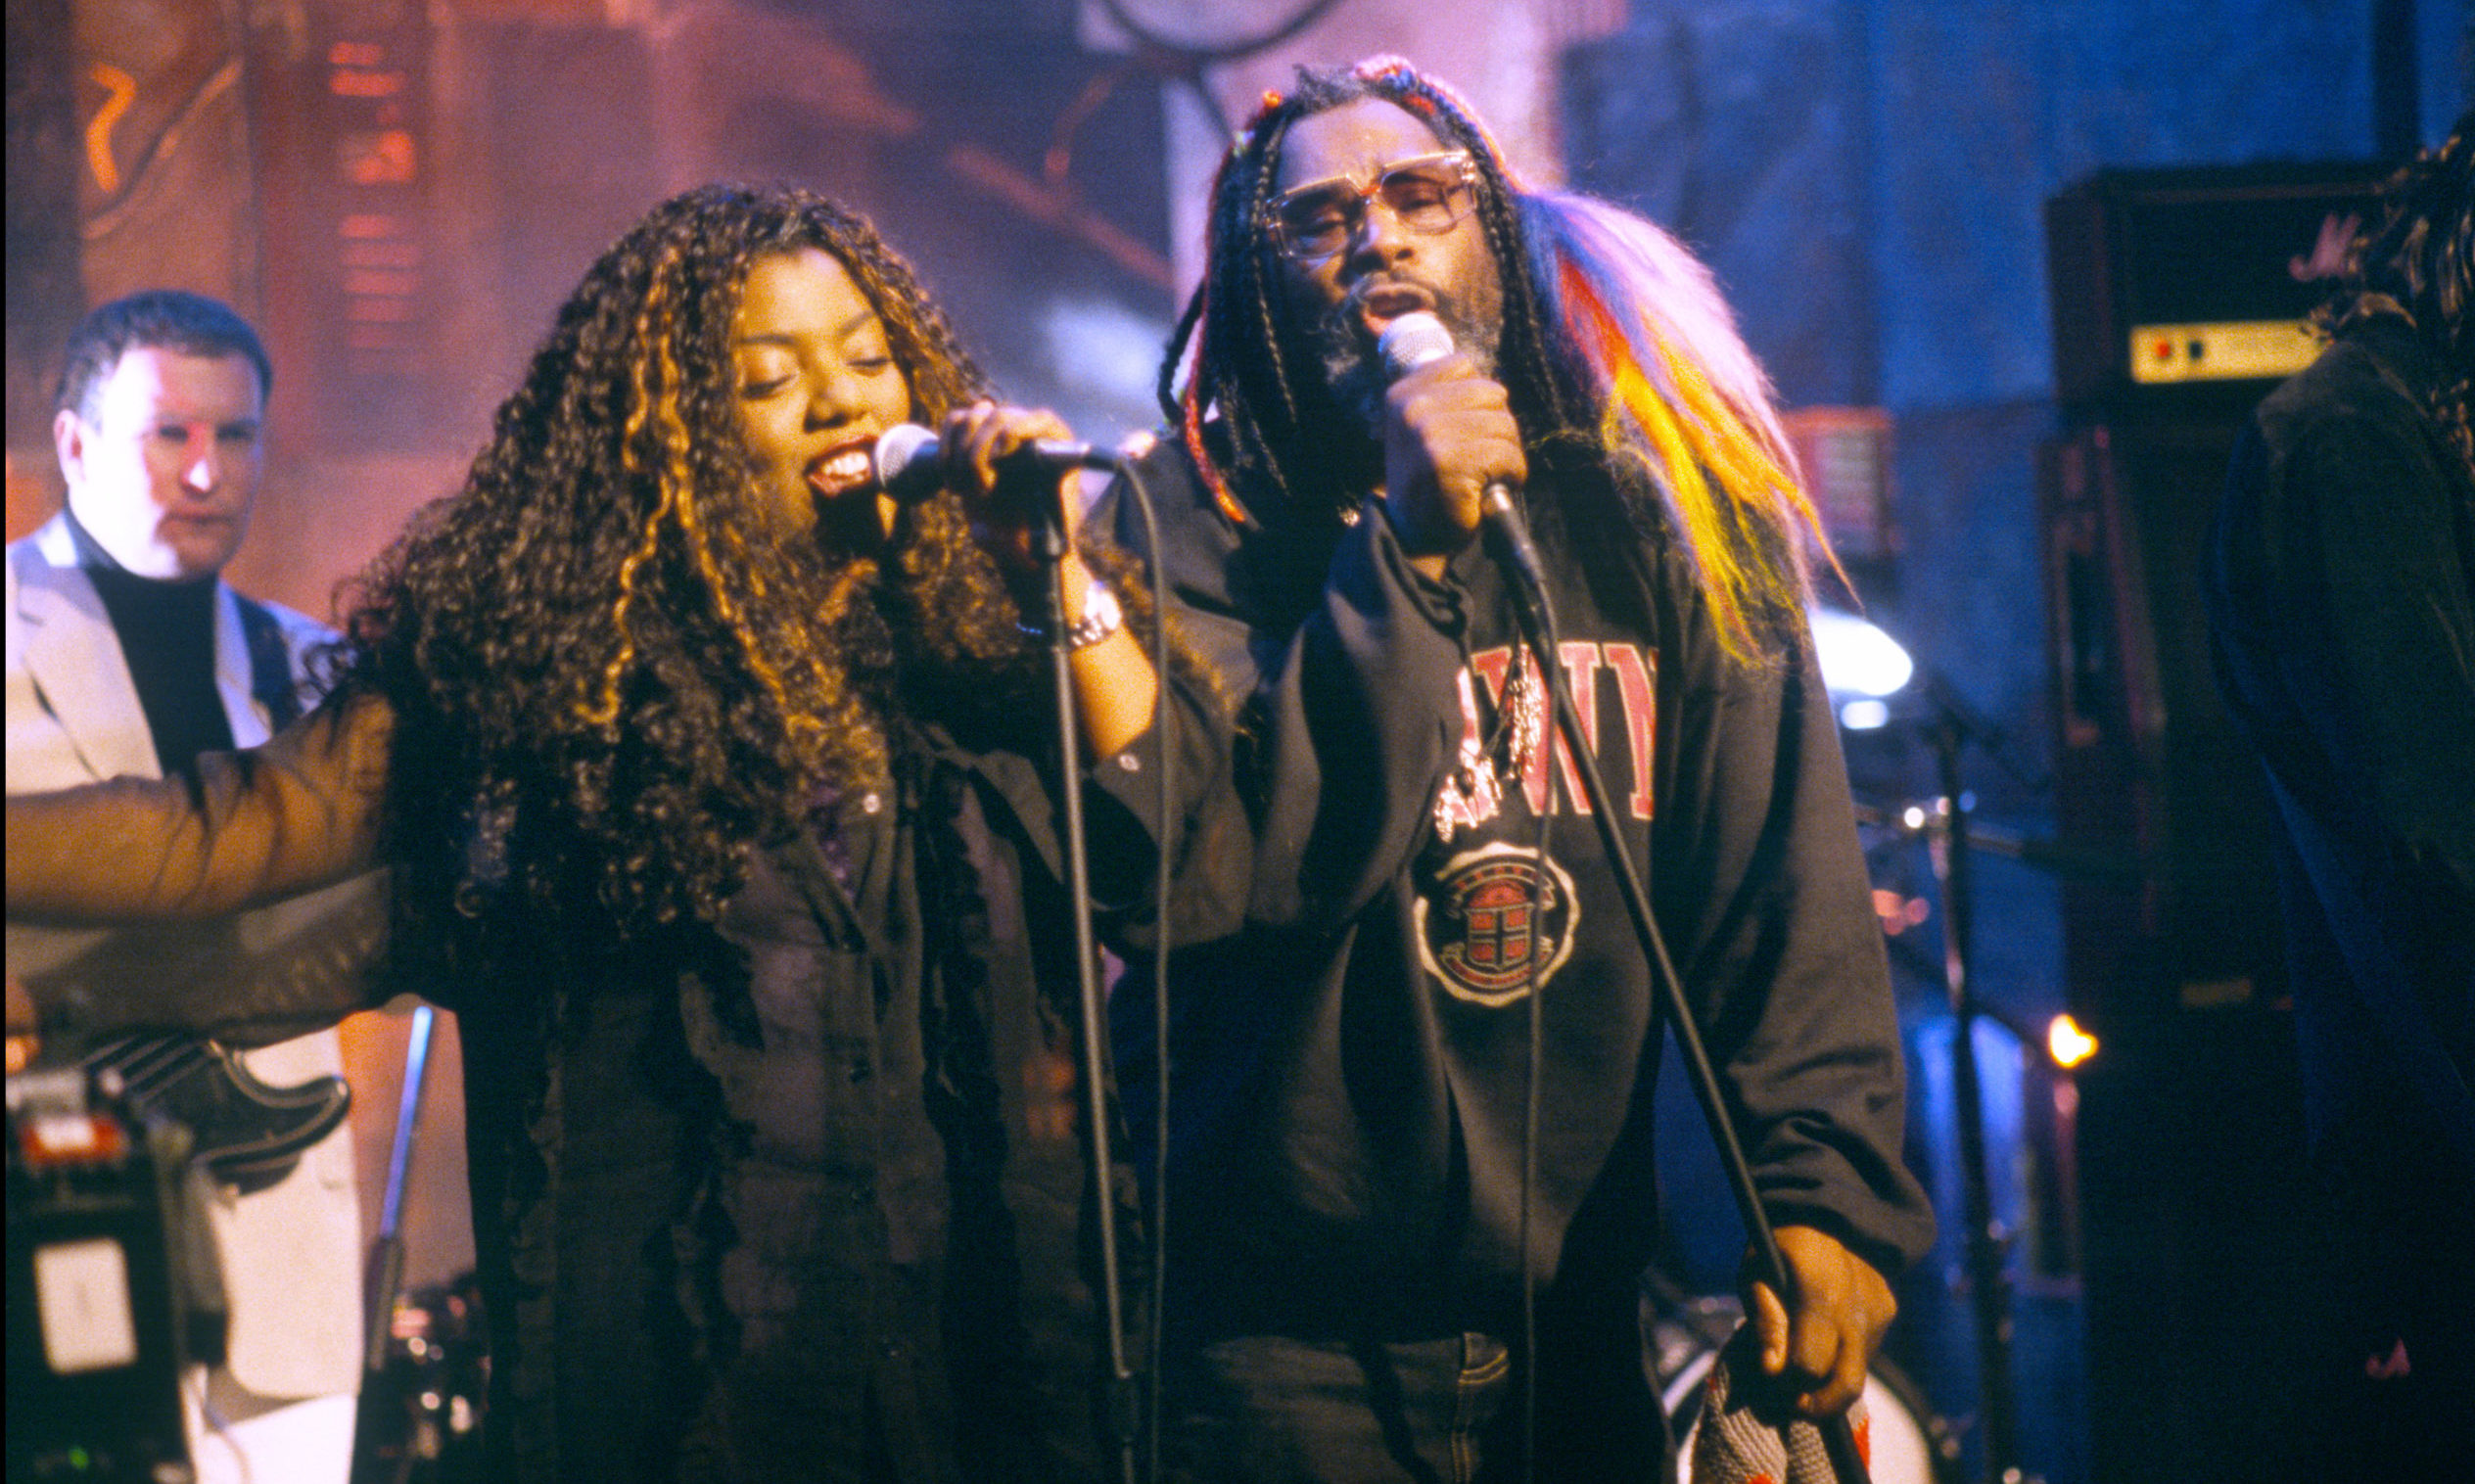 George Clinton, Denise Johnson and Primal Scream performing at NBC TV Studios, July 1996.